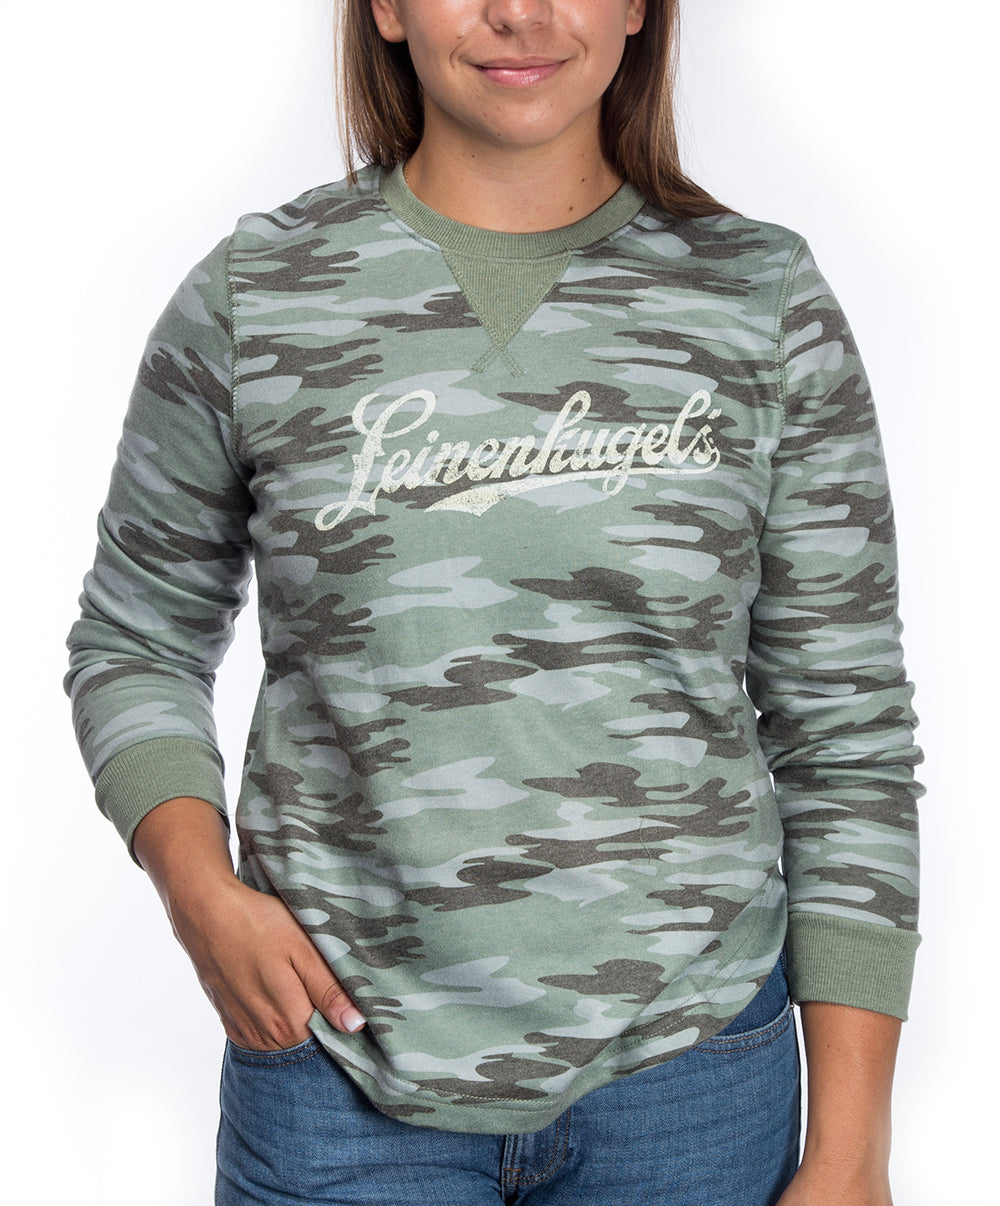 LADIES REMINGTON COMFY CREW